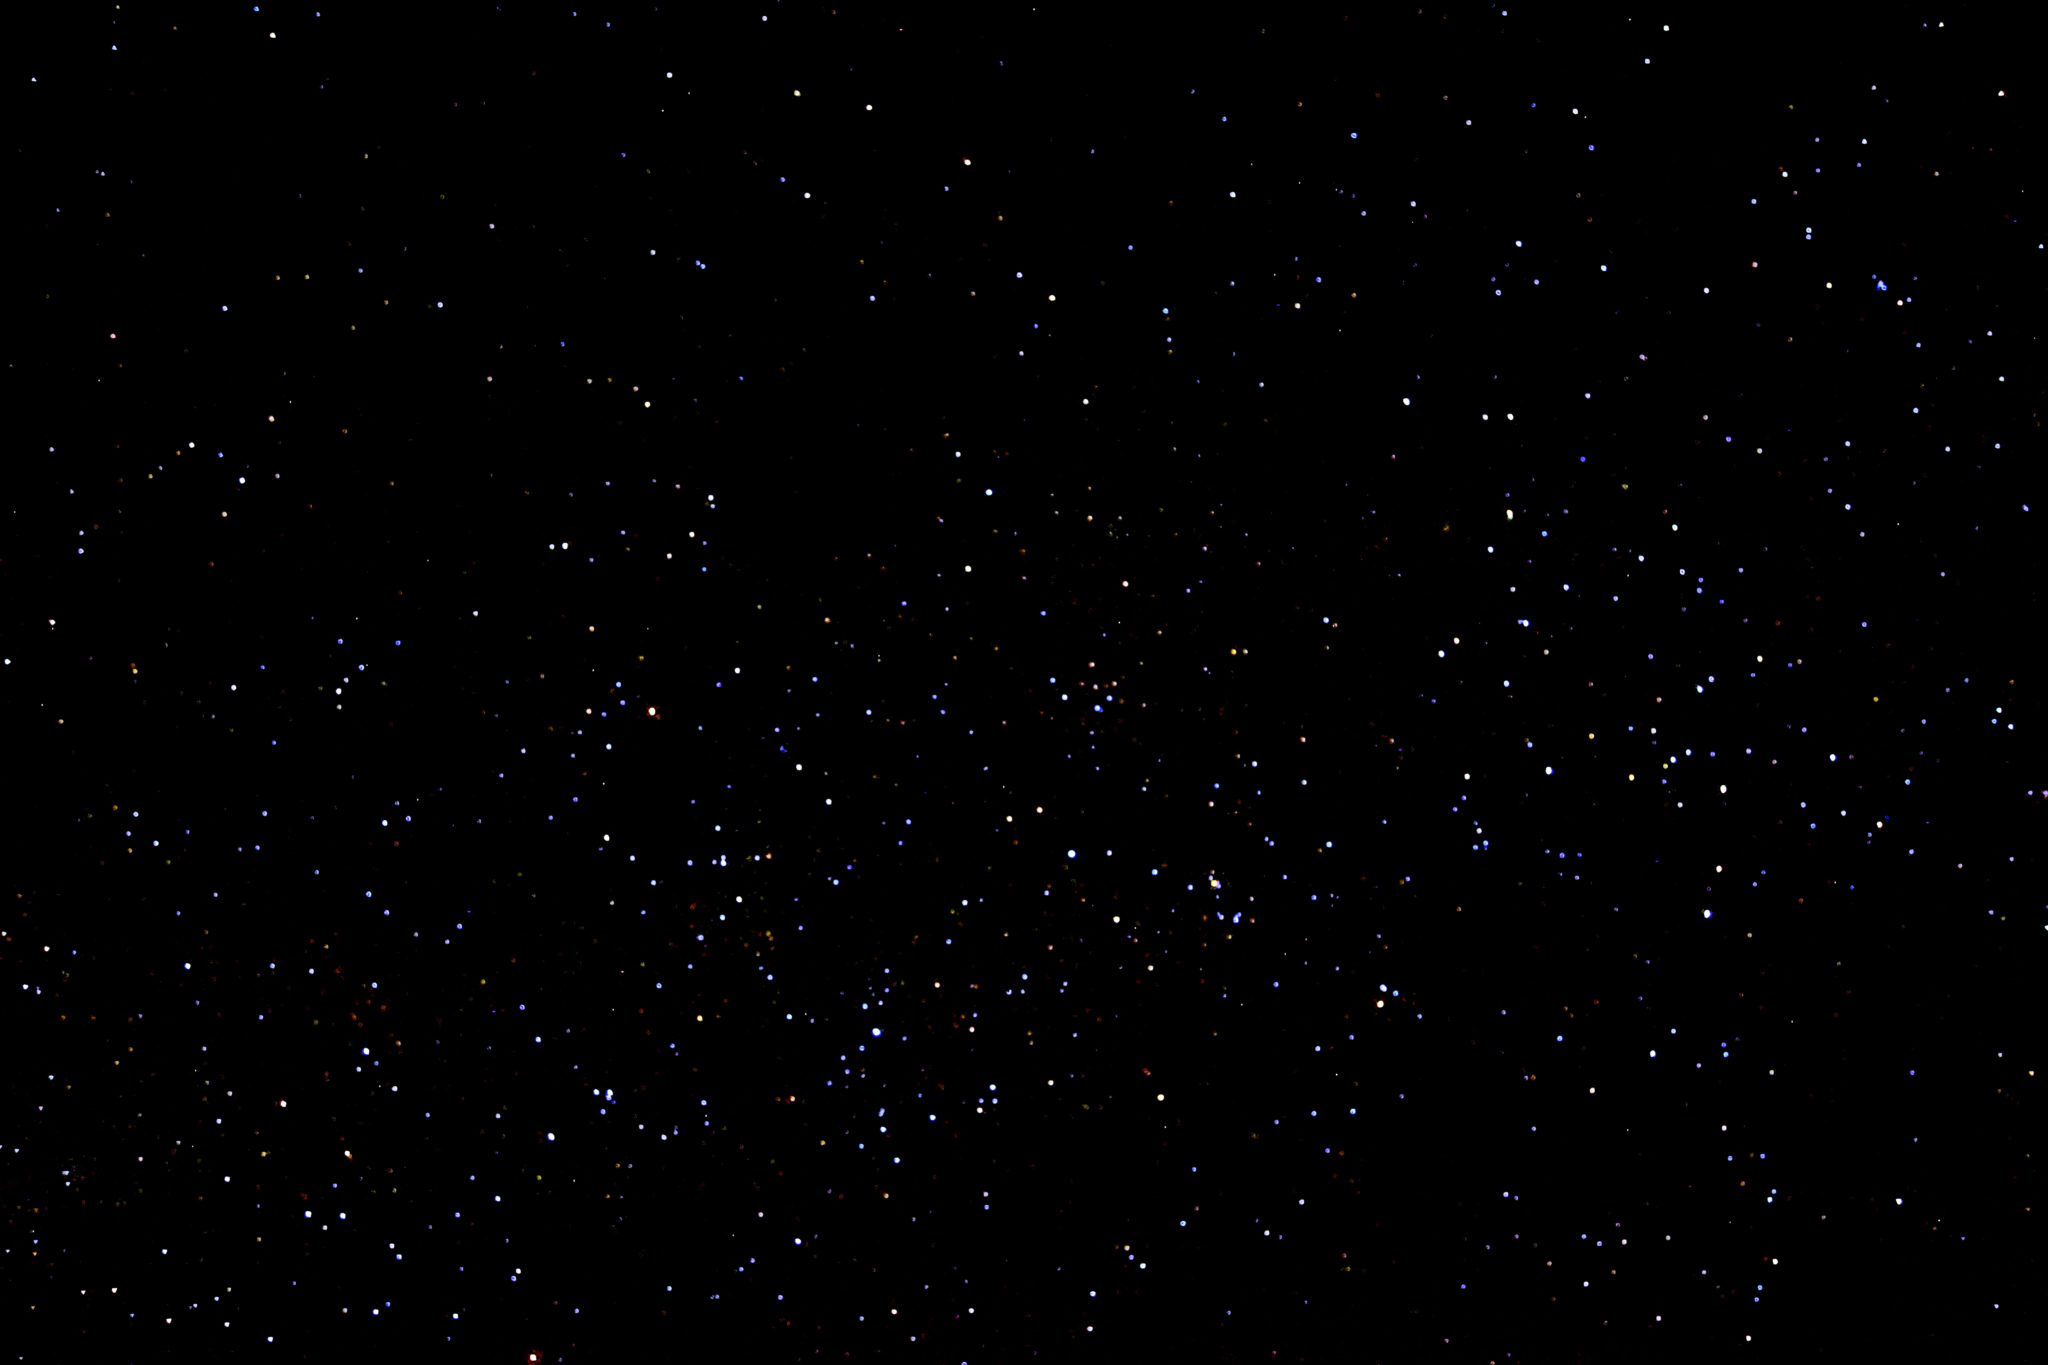 Night,Sky,With,Stars.,Beautiful,Real,Astronomic,Background,Of,Many